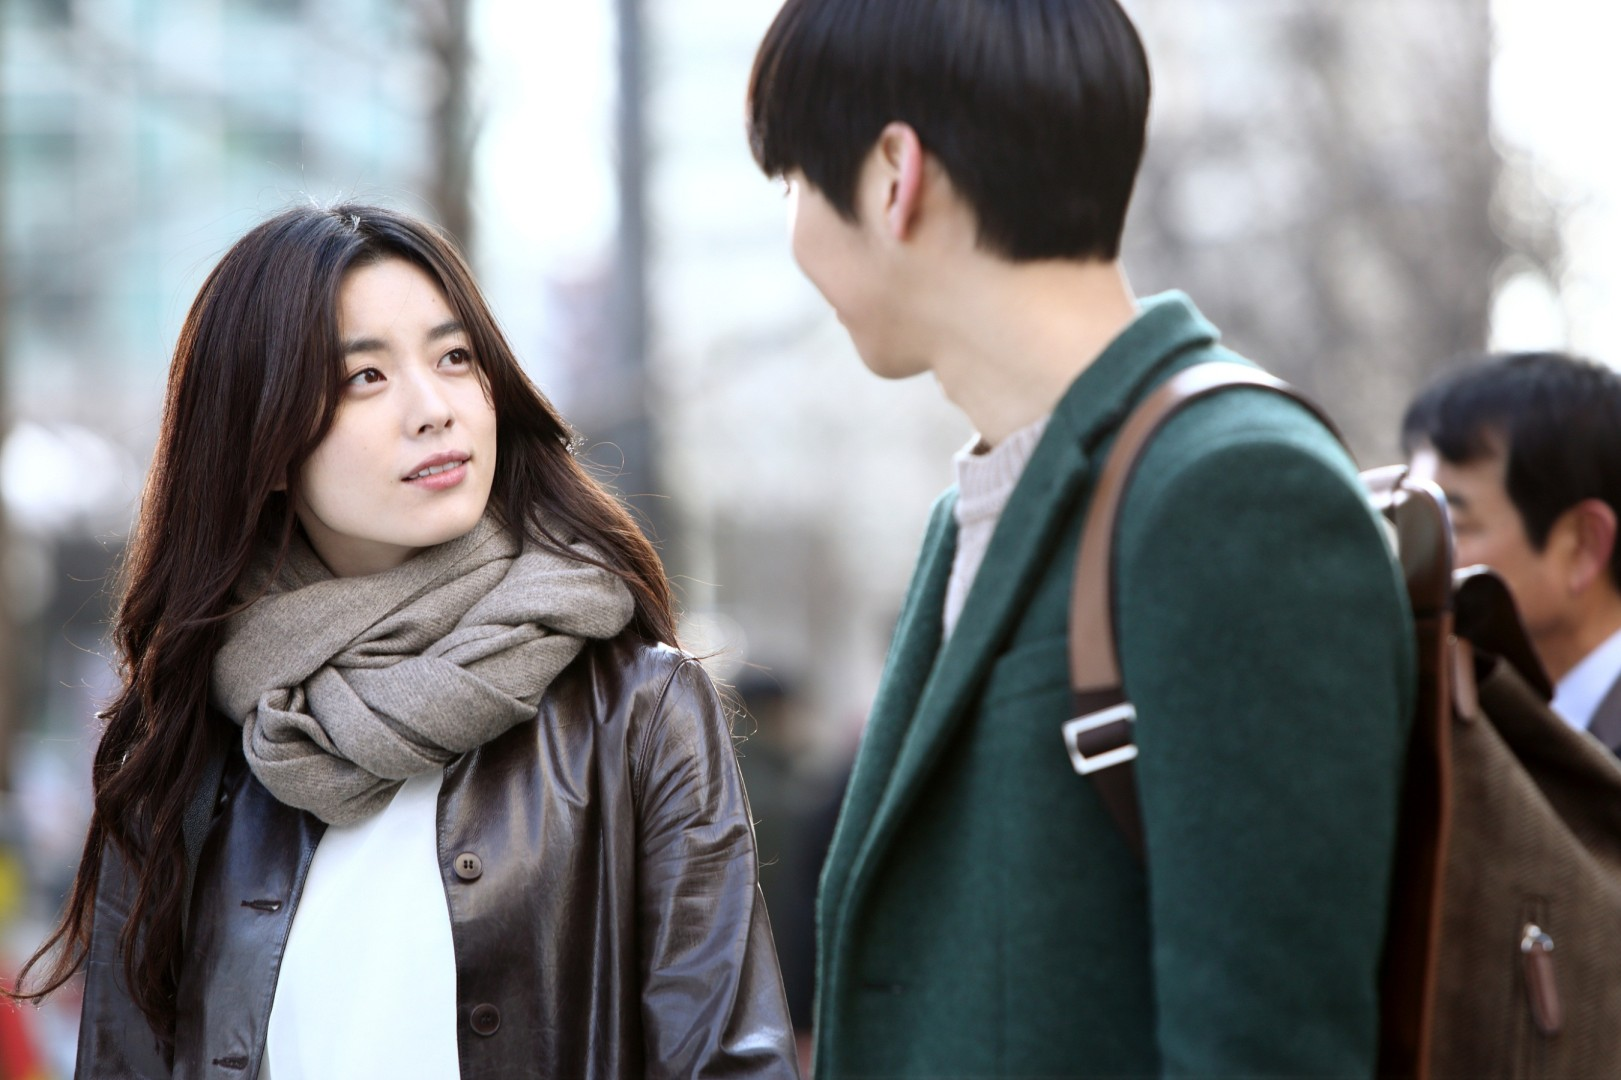 Film review: Han Hyo-joo stars in cautious Korean drama The